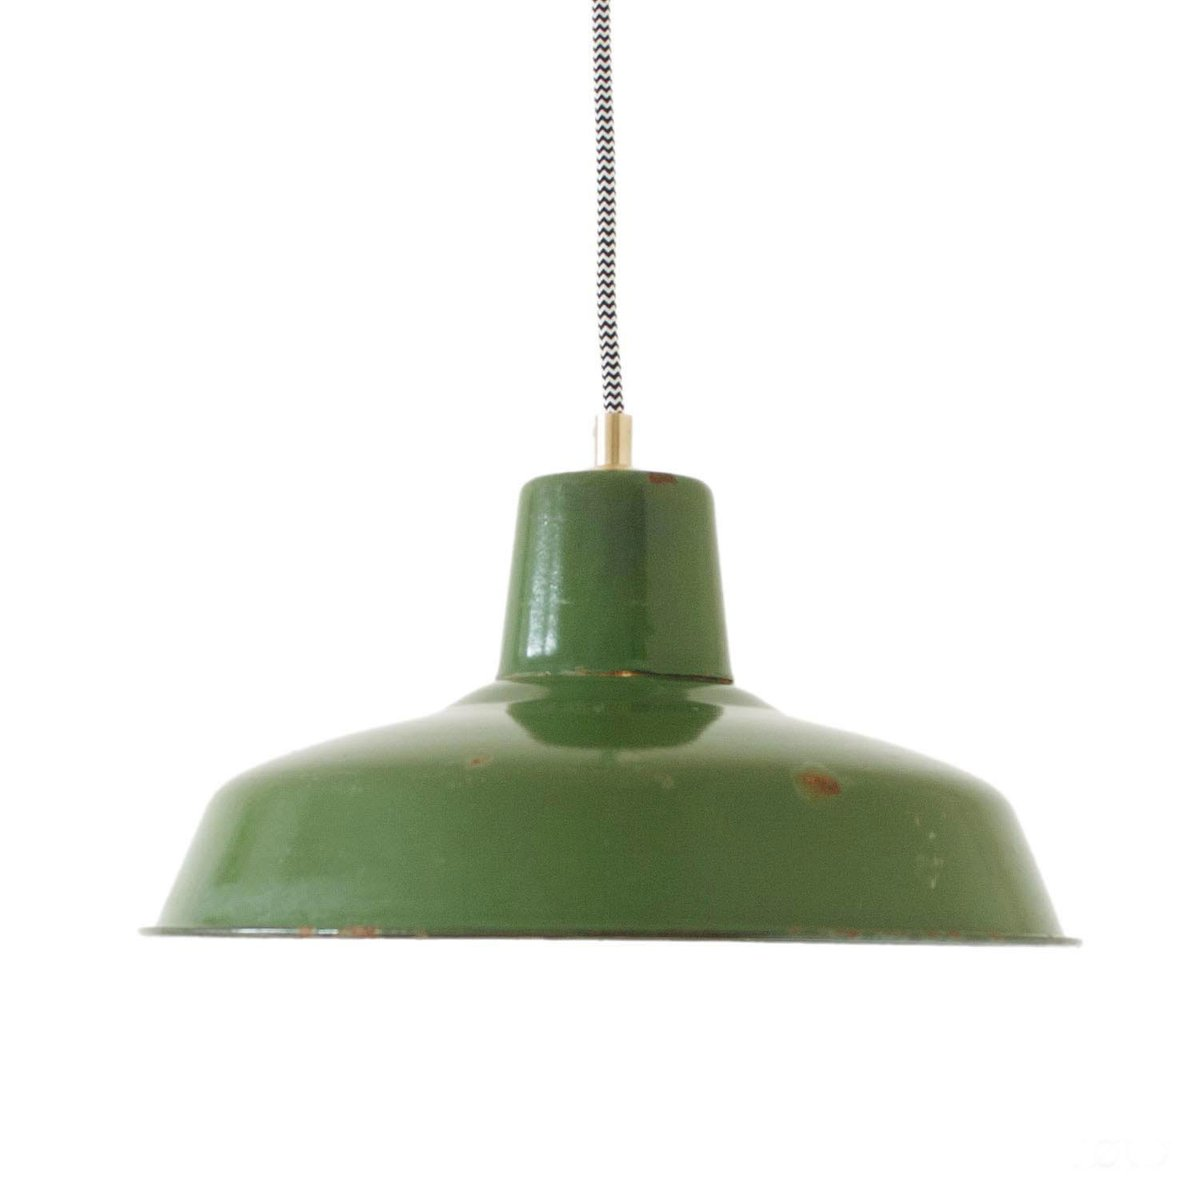 Lampe suspension industrielle vintage france en vente sur pamono - Lampe suspension industrielle ...